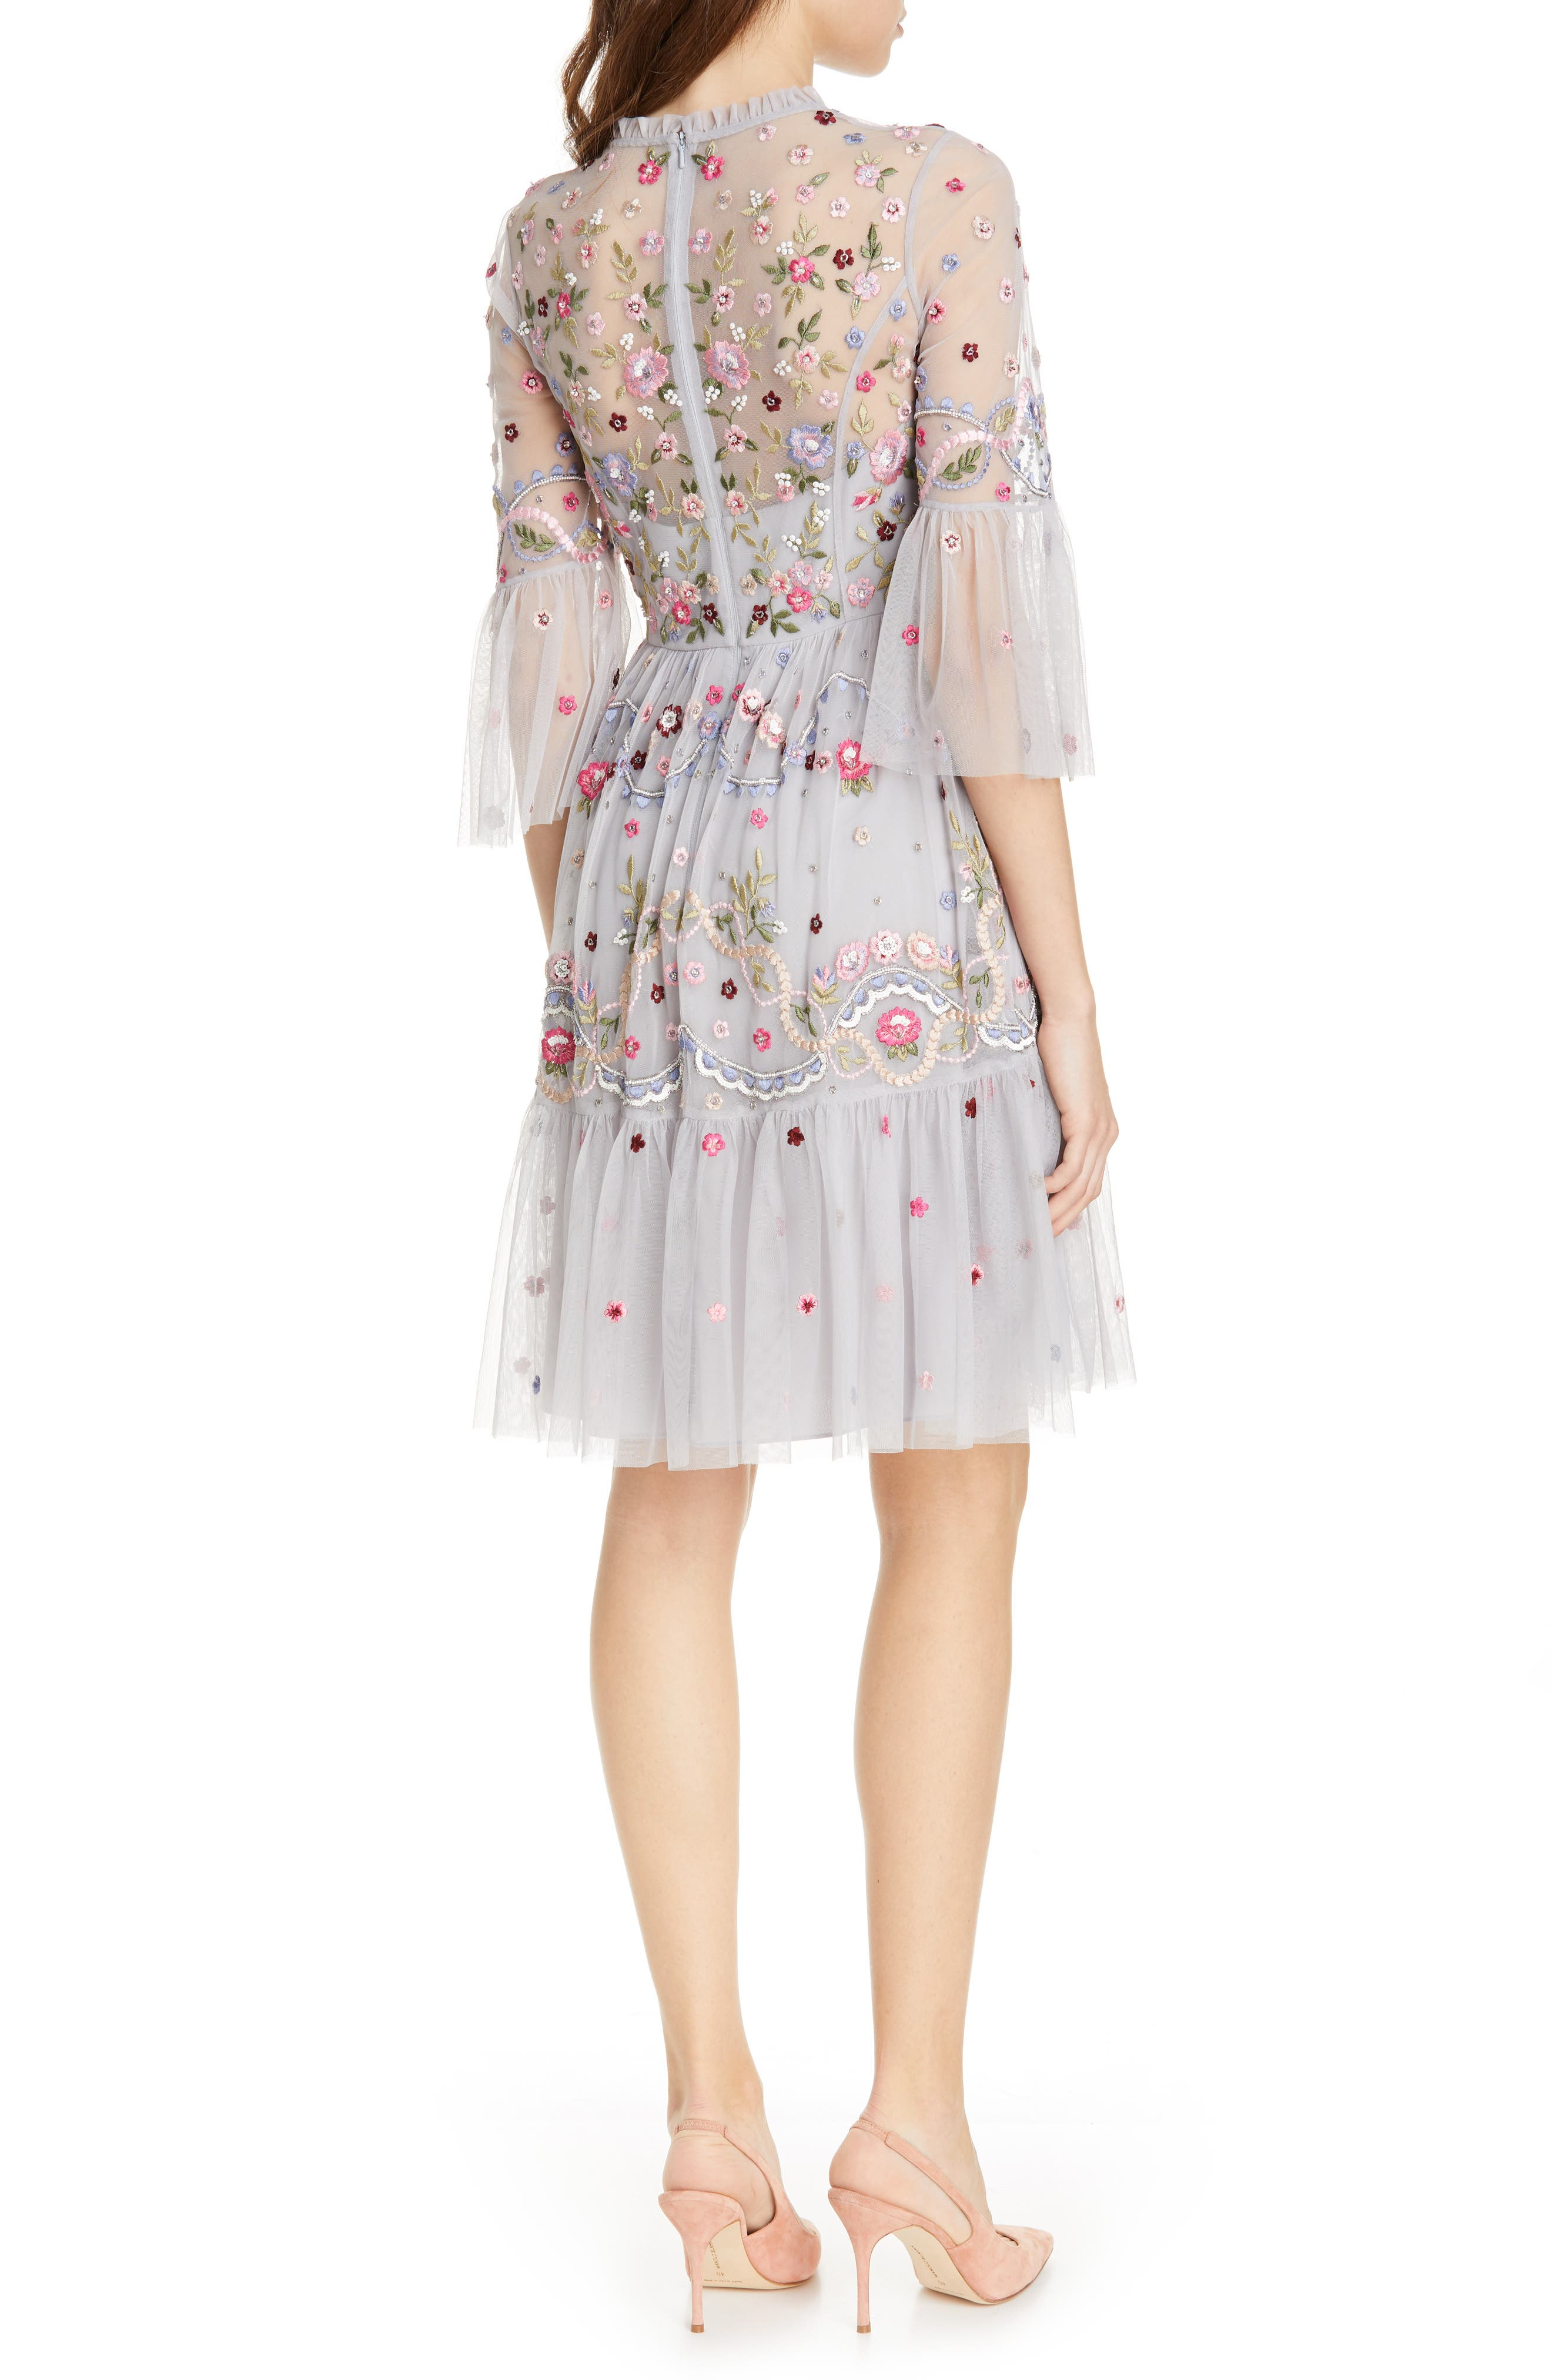 NEEDLE & THREAD, Dreamers Embroidered Tulle Dress, Alternate thumbnail 2, color, 400